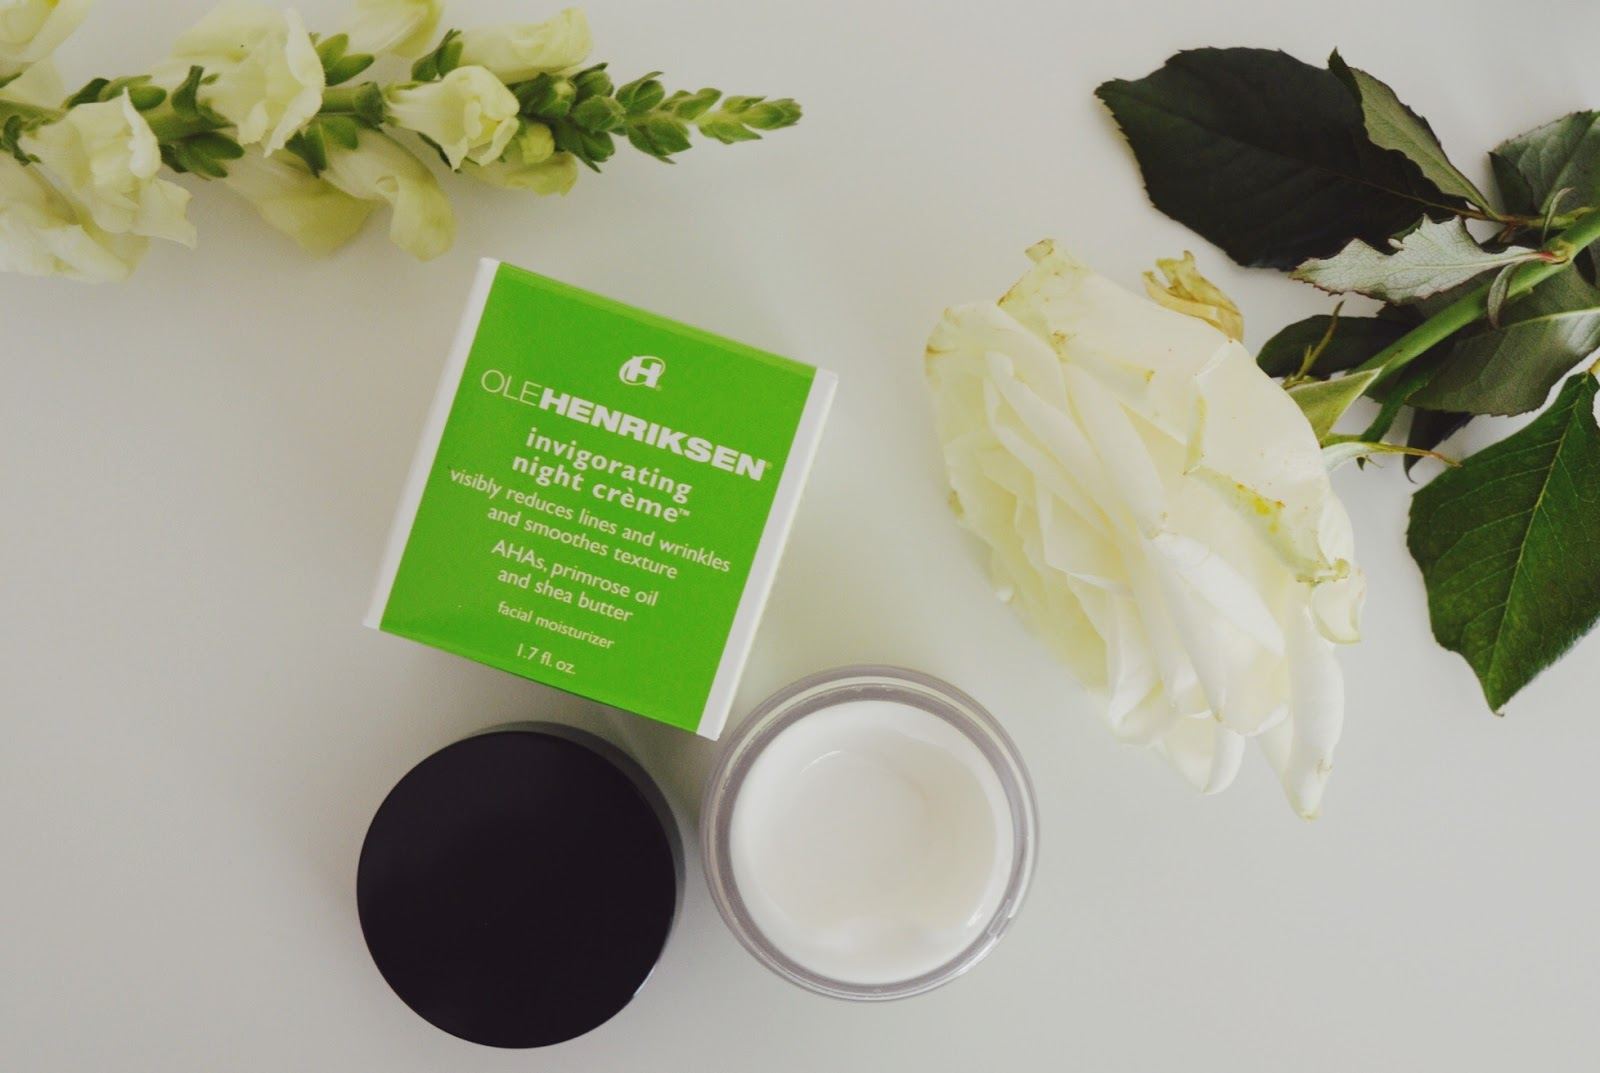 Ole Henriksen Invigorating night creme review, FashionFake, beauty bloggers, anti ageing night creme